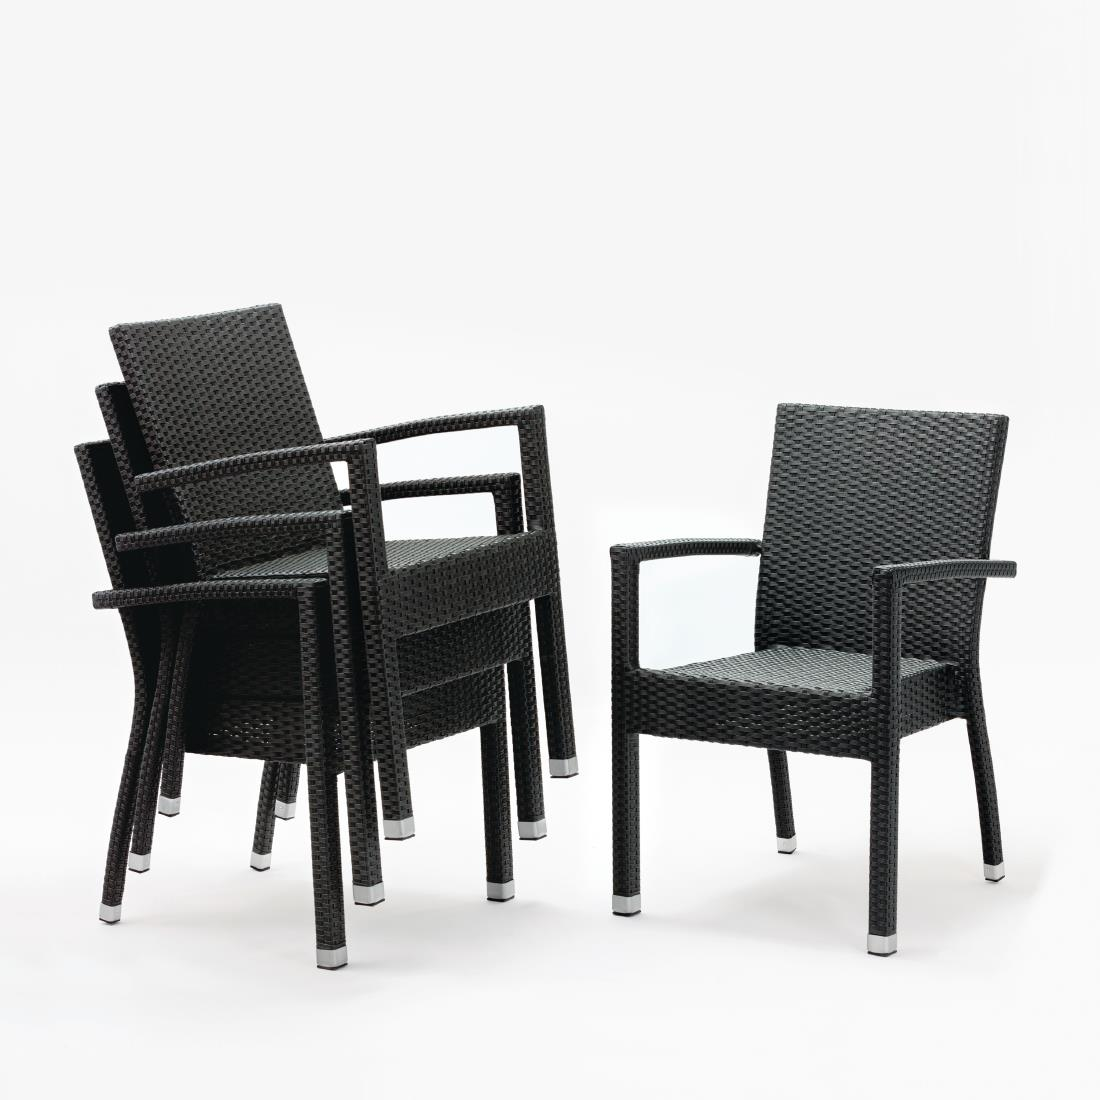 Rattan Armchair DL47 - Charcoal